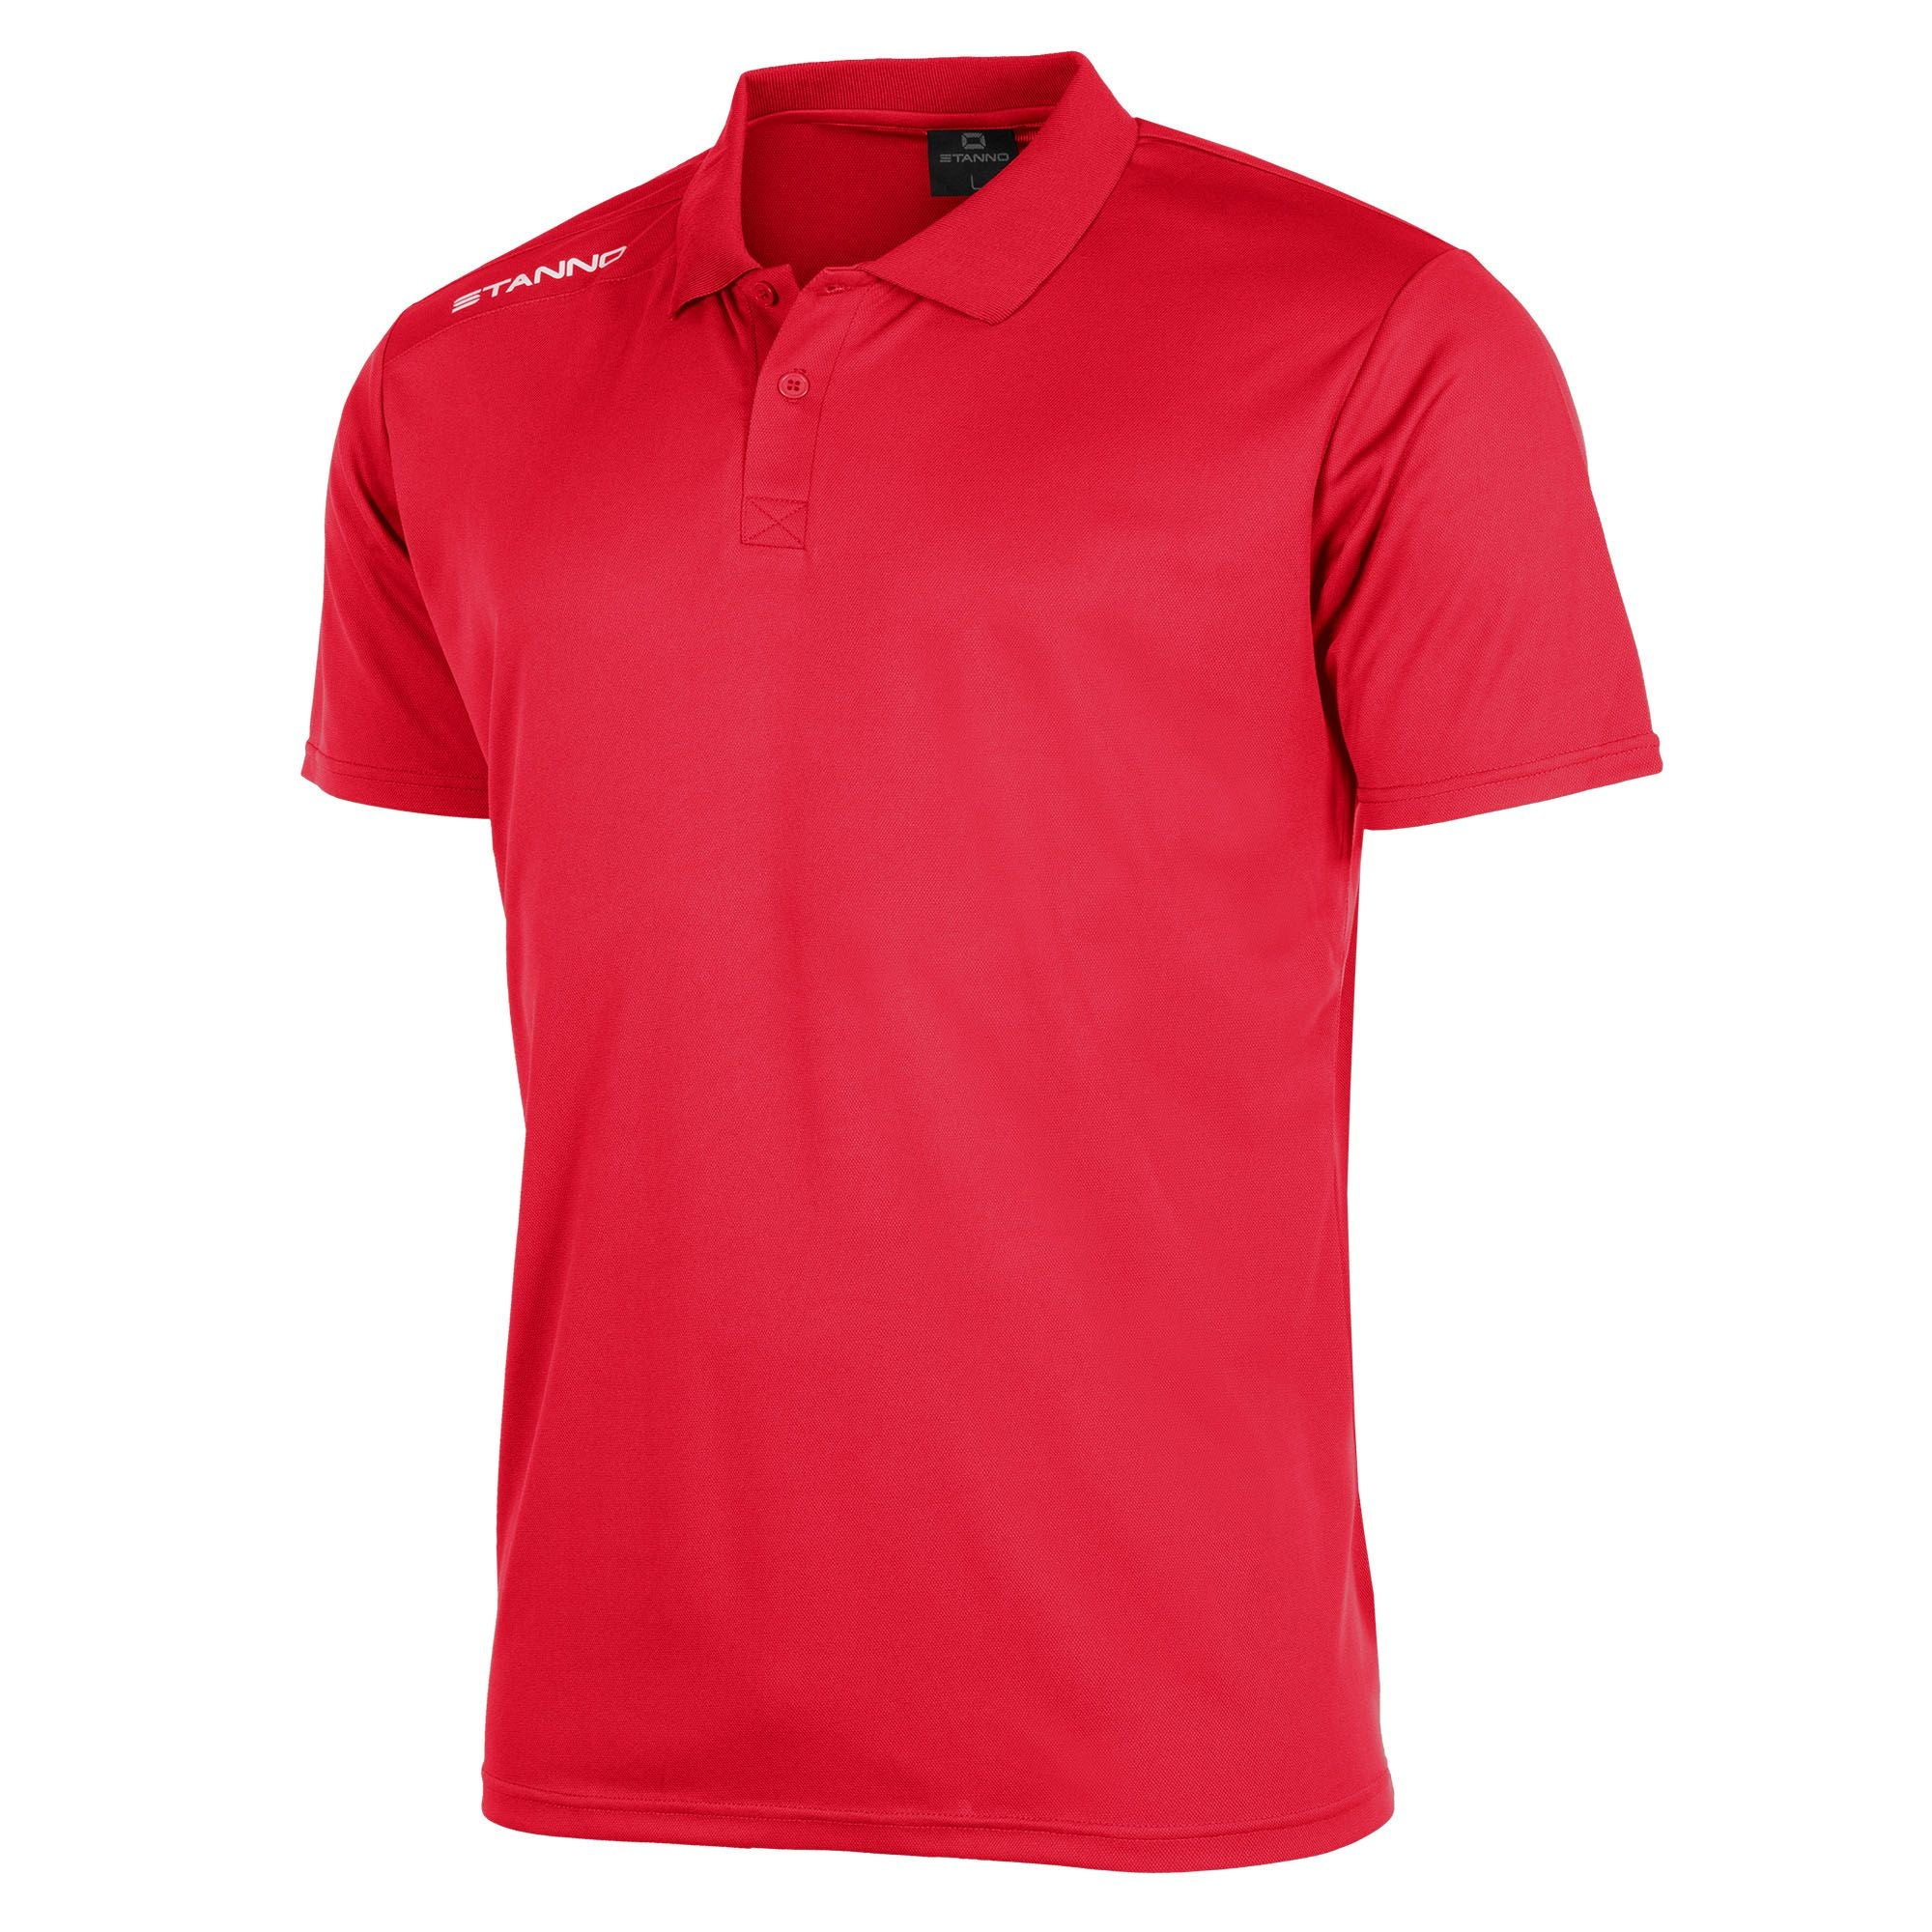 Front of Stanno Field Polo Shirt in red with white text logo on right shoulder